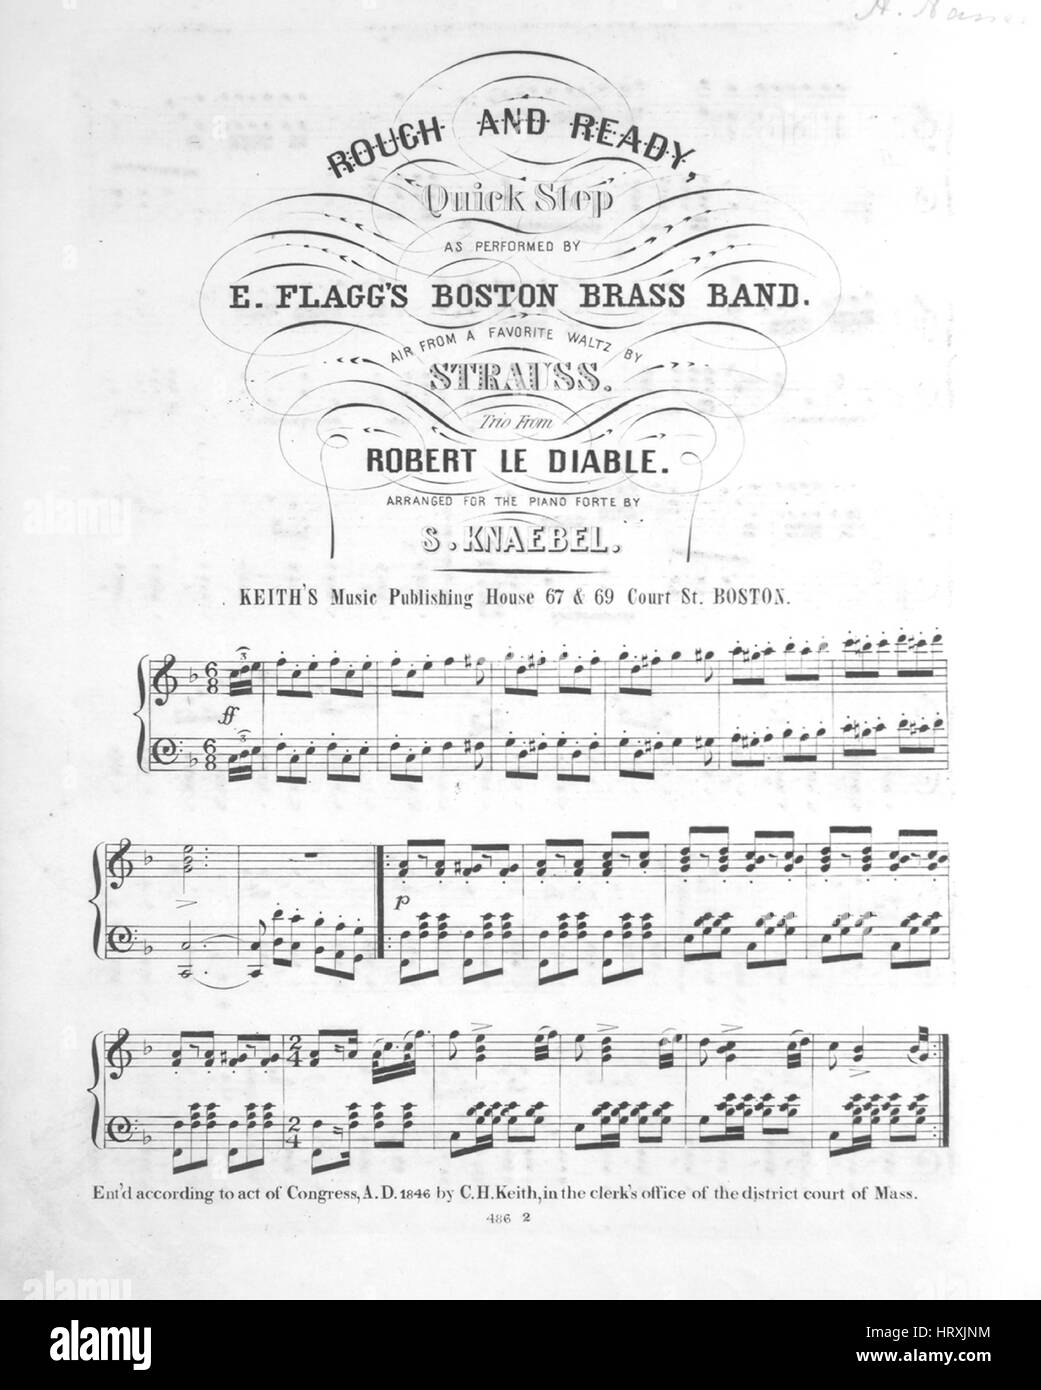 sheet music cover image of the song rough and ready quick step with original authorship notes reading air from a favorite waltz by strauss trio from